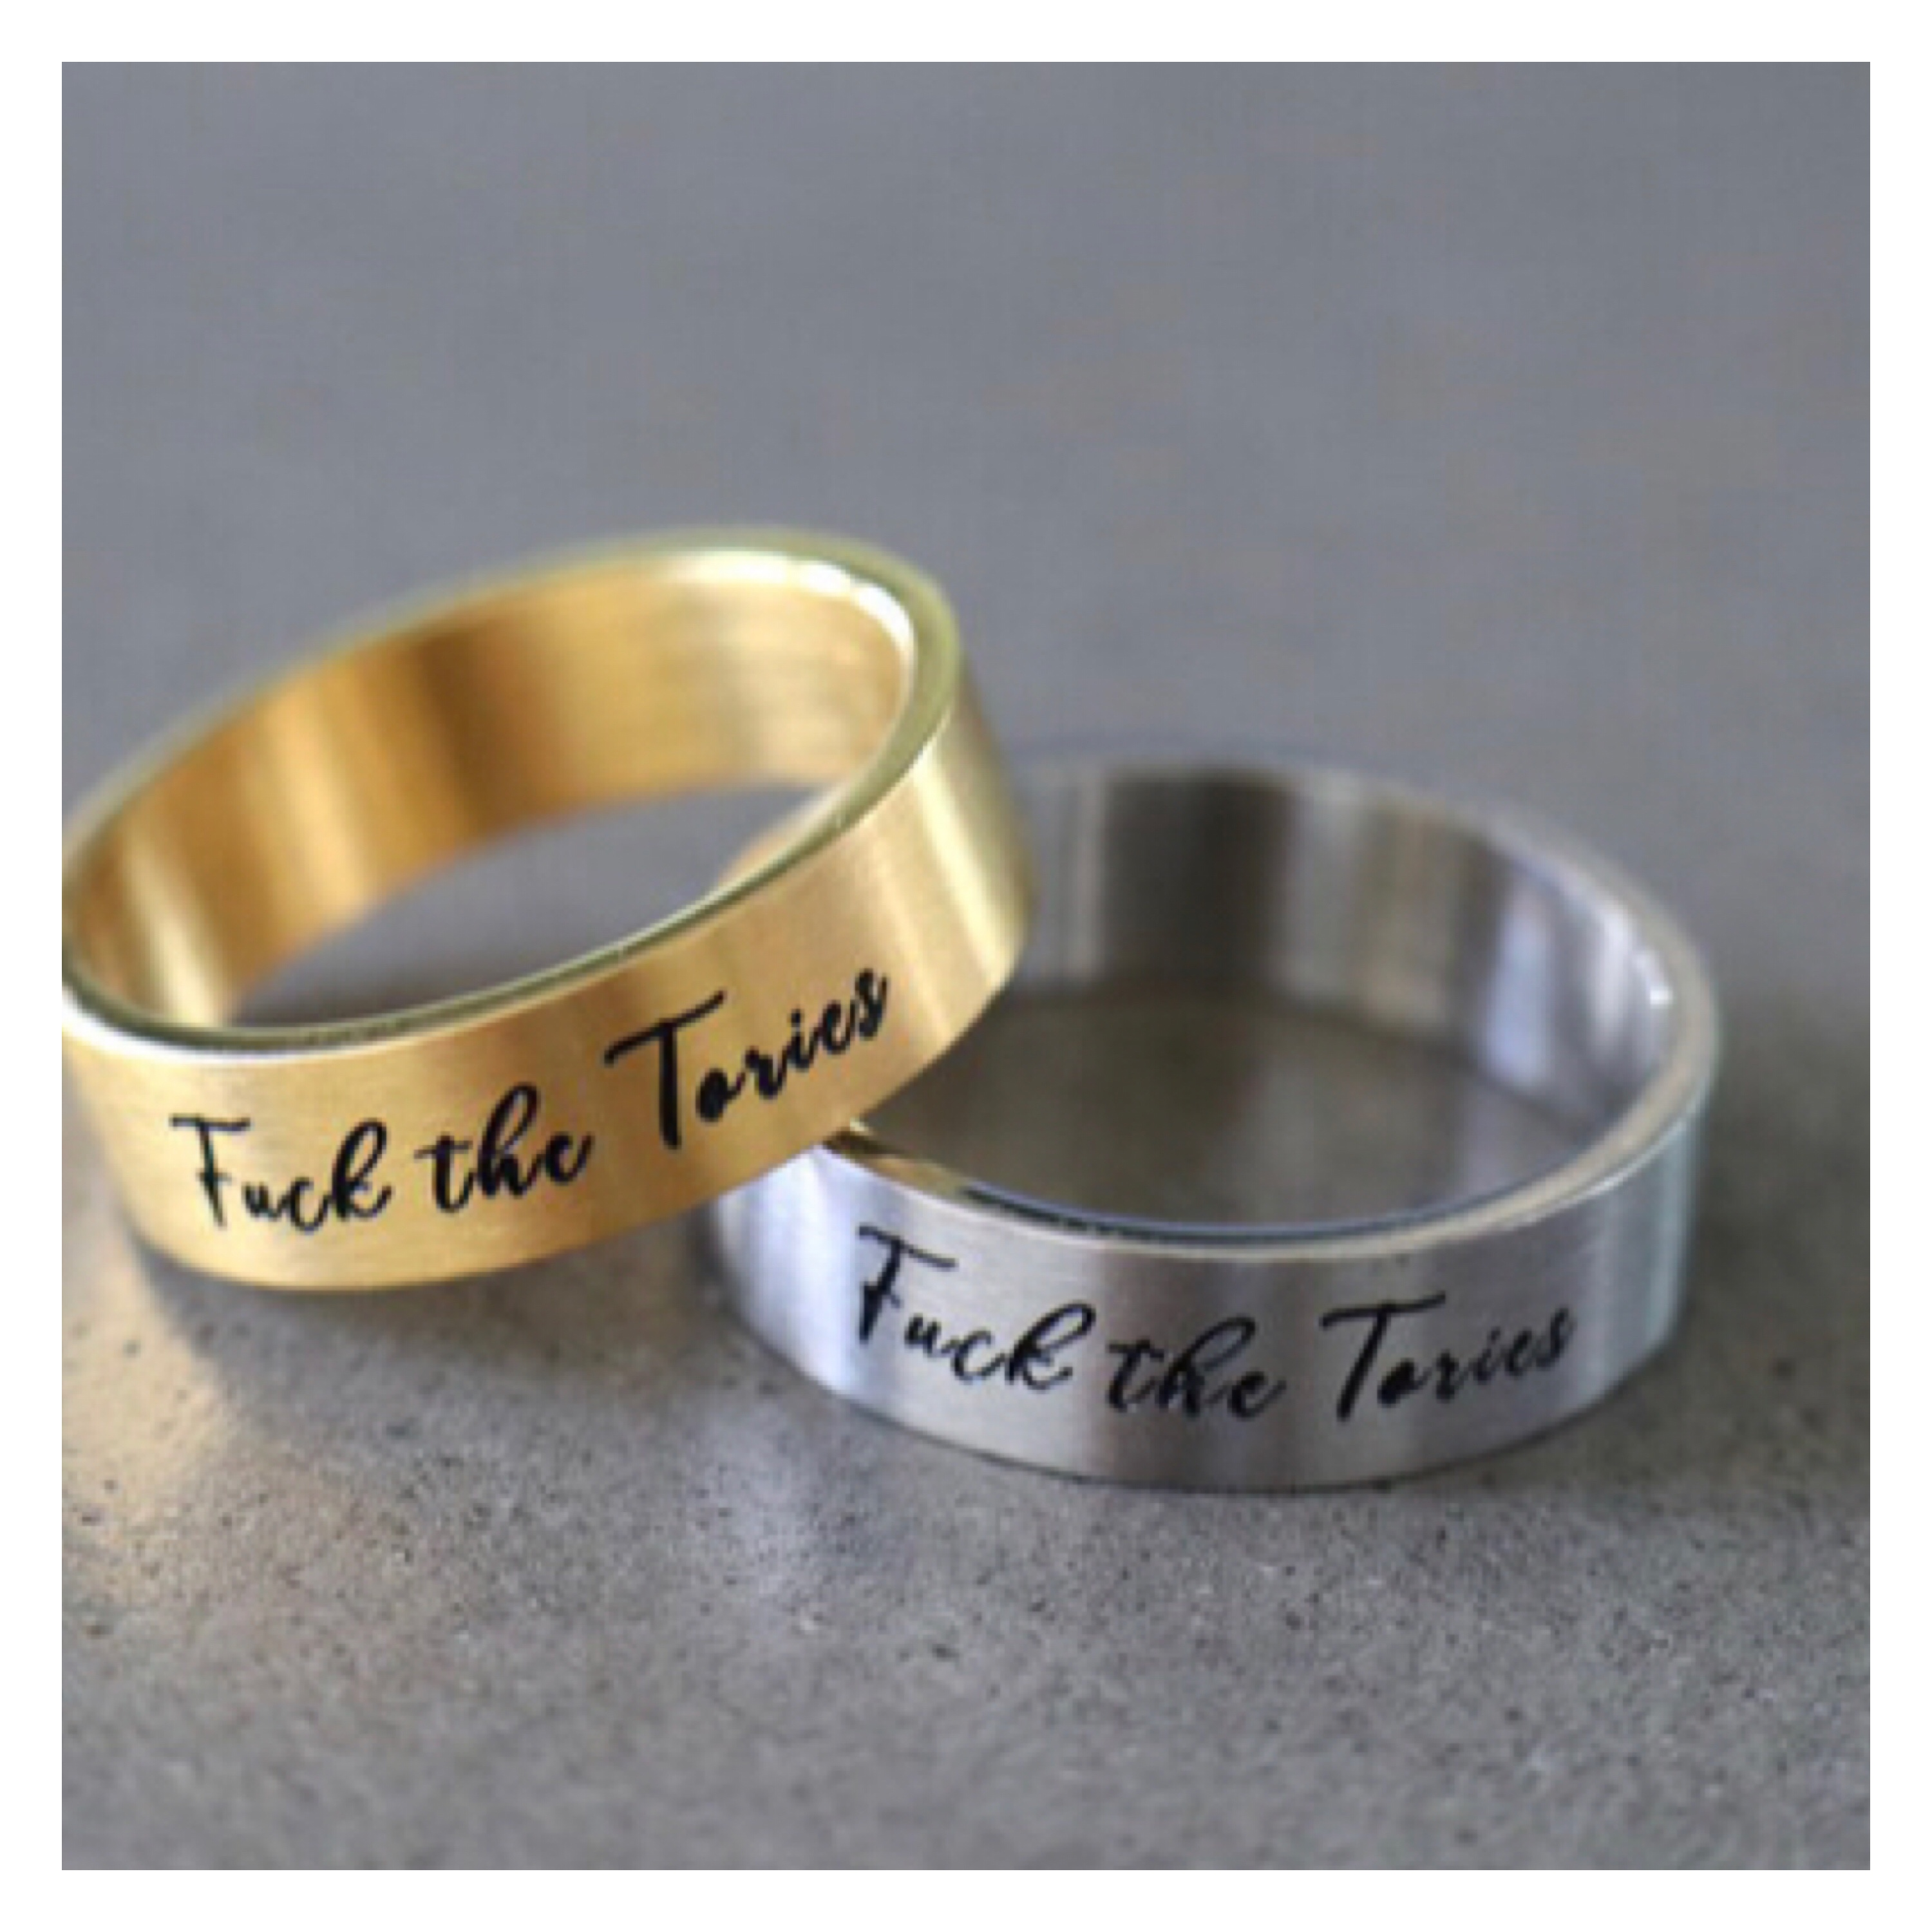 Gold & silver band rings engraved with fuck the Tories